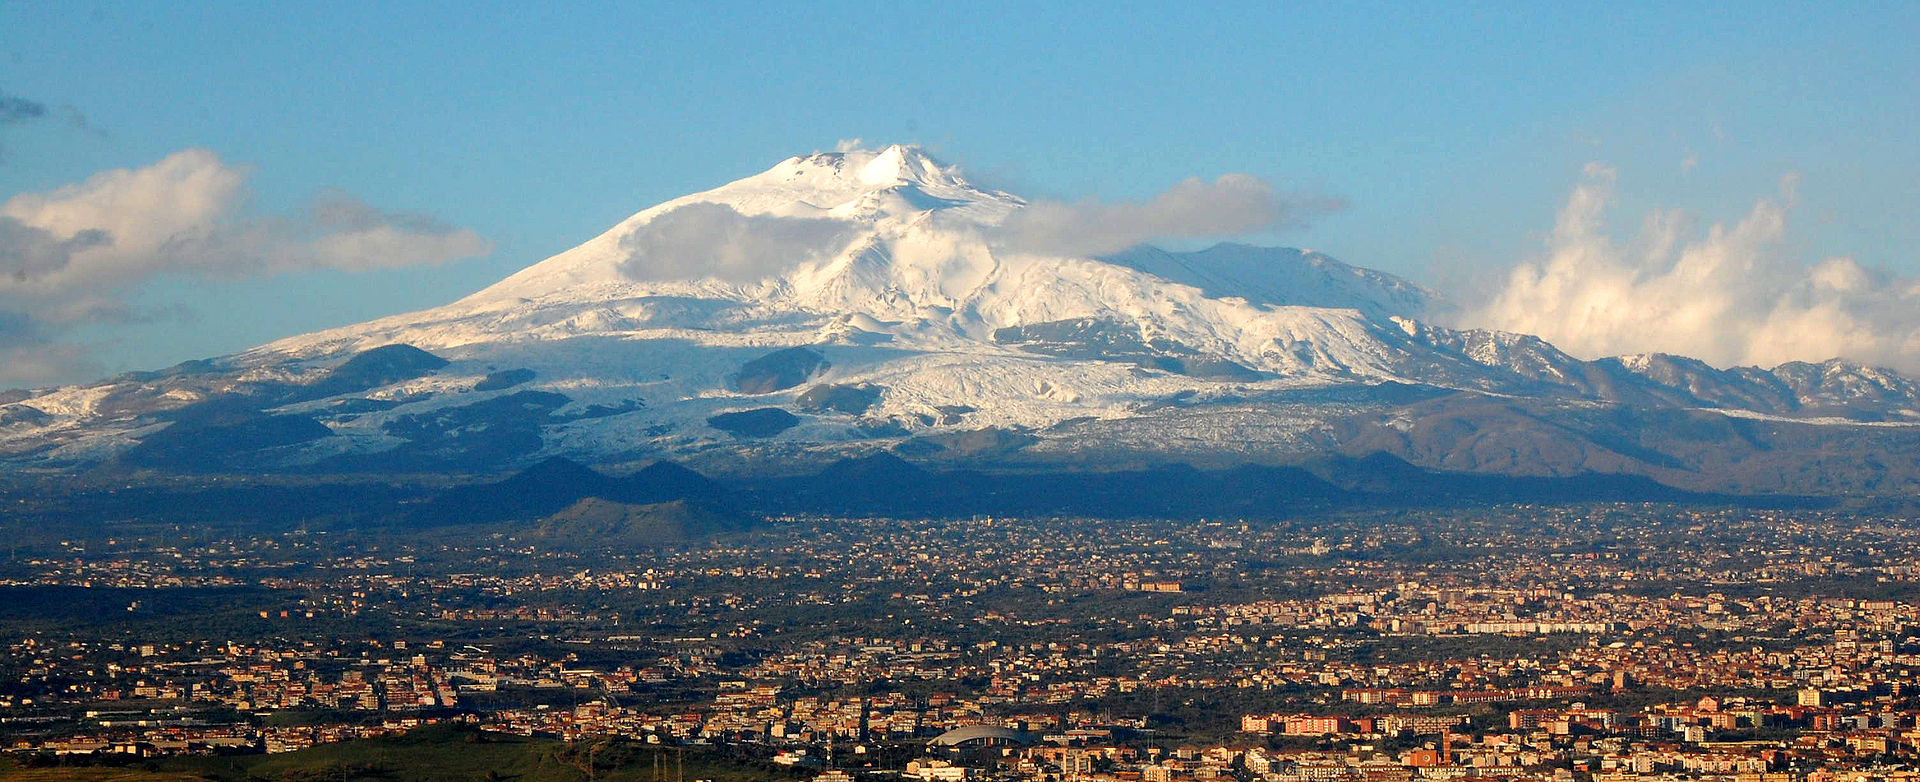 Mt_Etna_and_Catania1.jpg